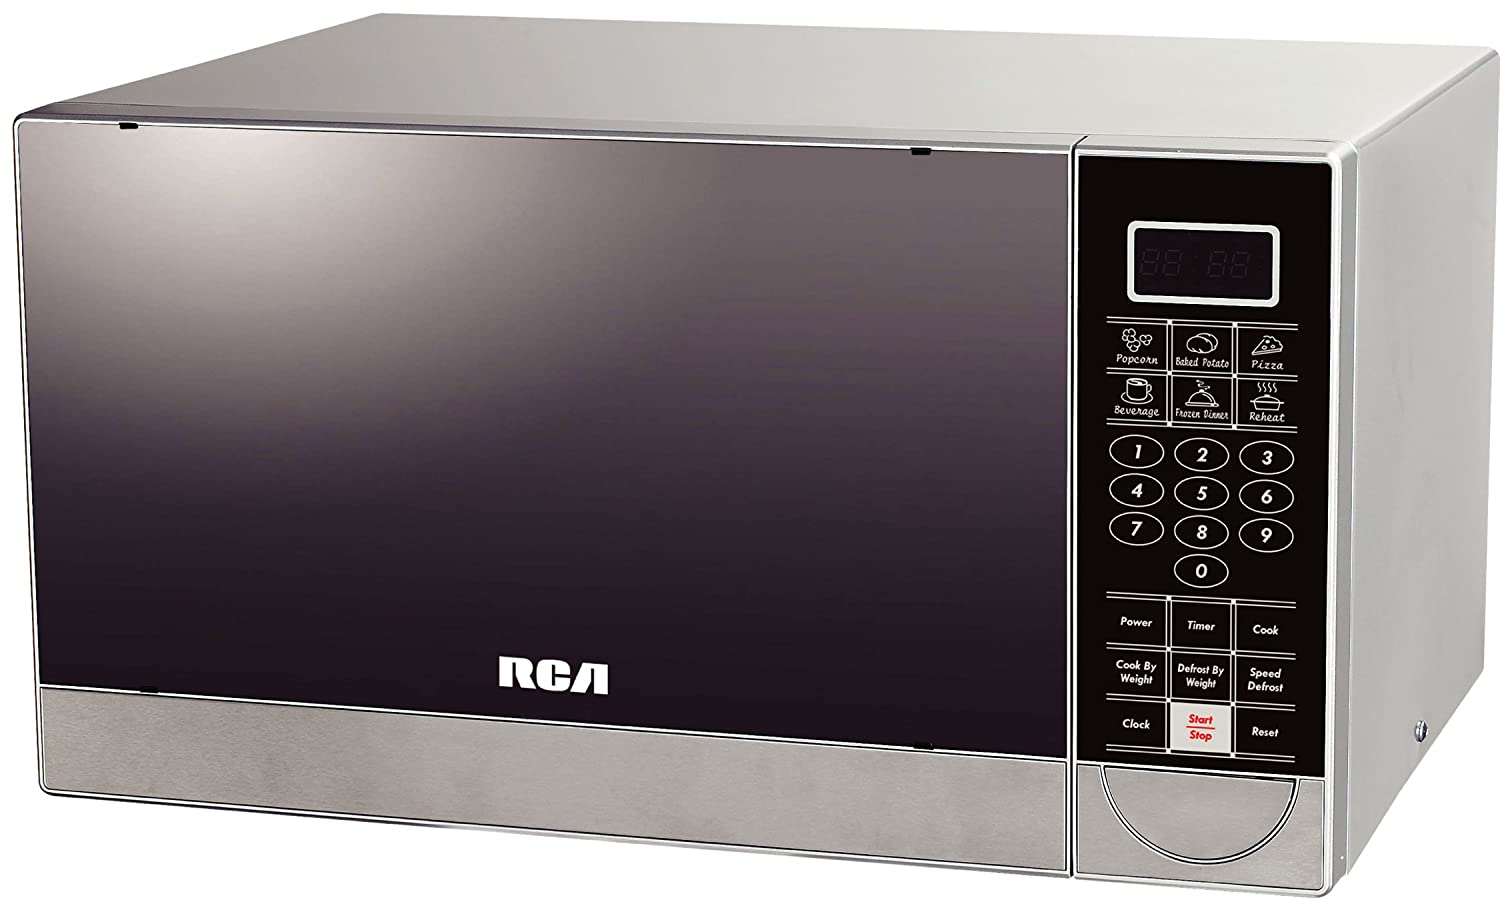 RCA 1.1 Cubic Feet Stainless Steel Microwave Oven